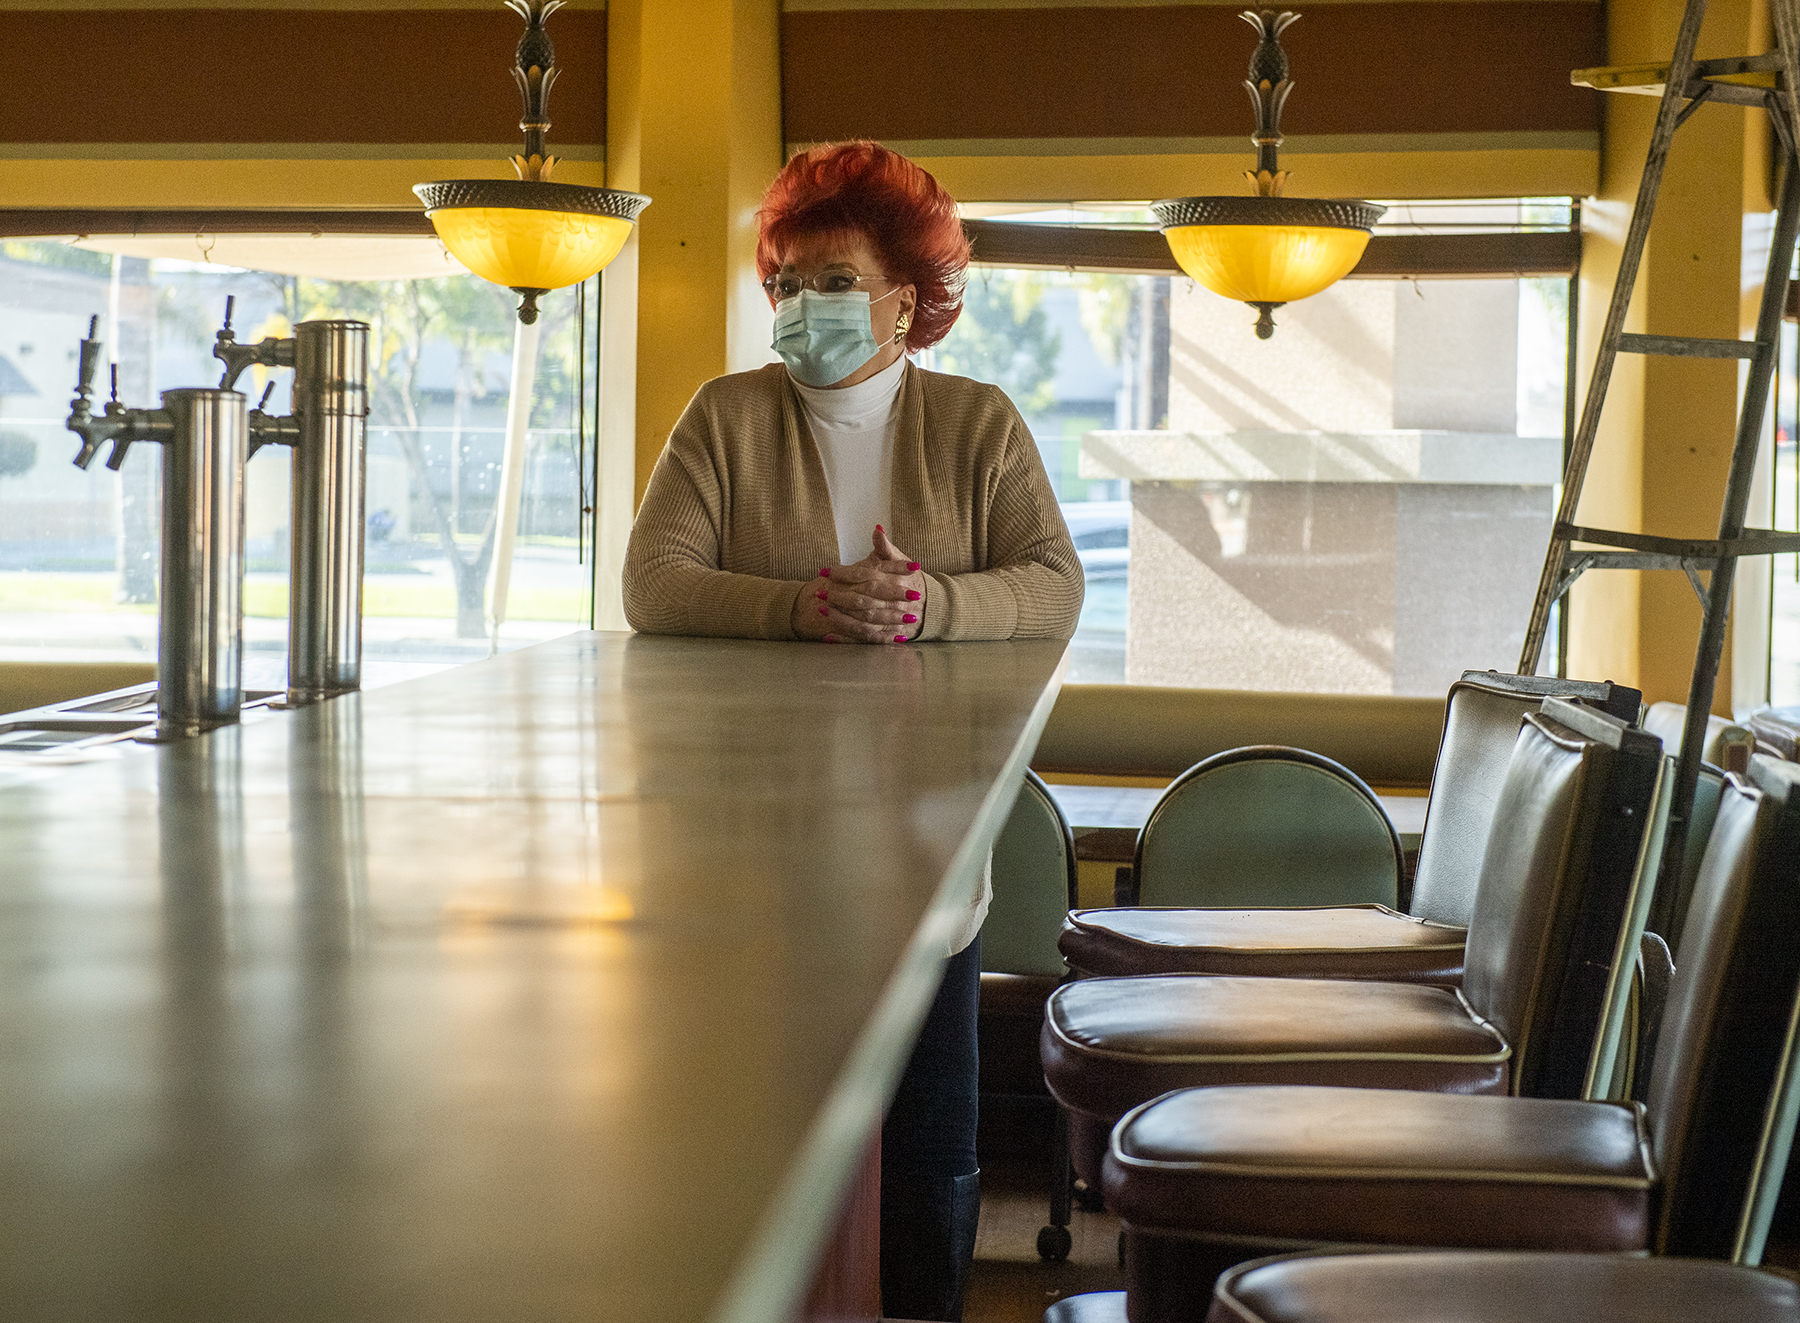 Long-time local fave Huff's restaurant to close